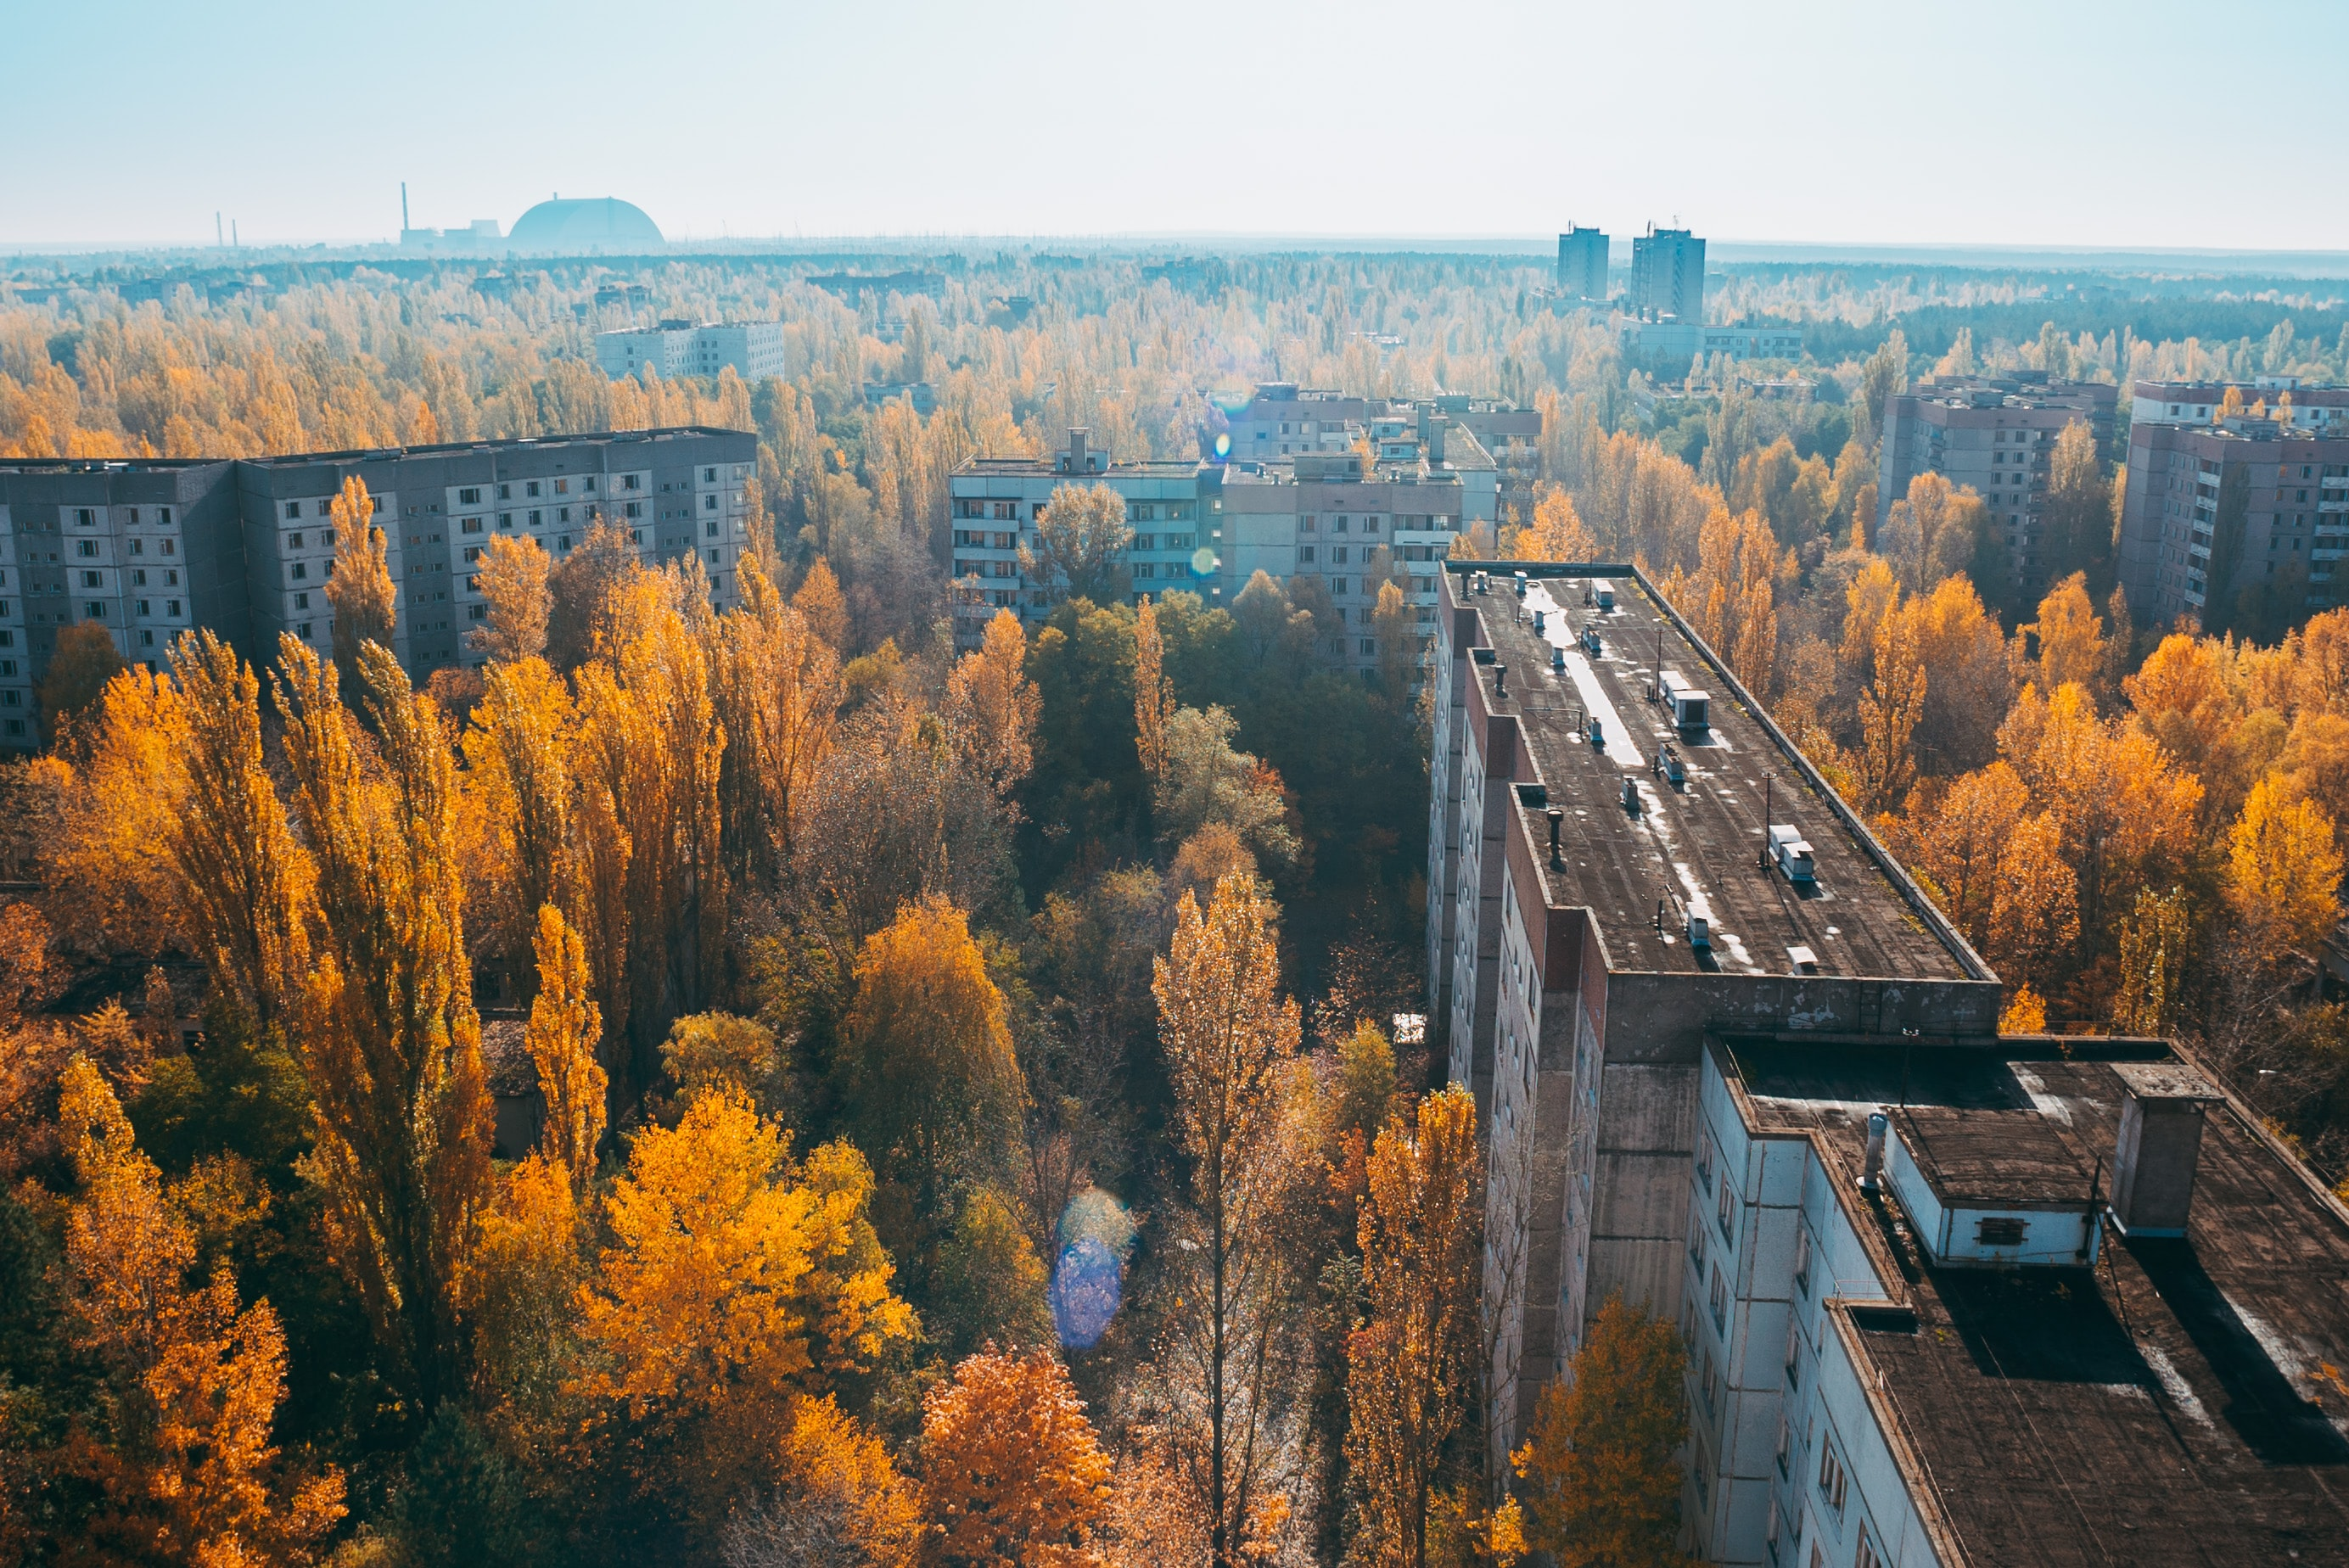 birds eye view of buildings surrounded with trees